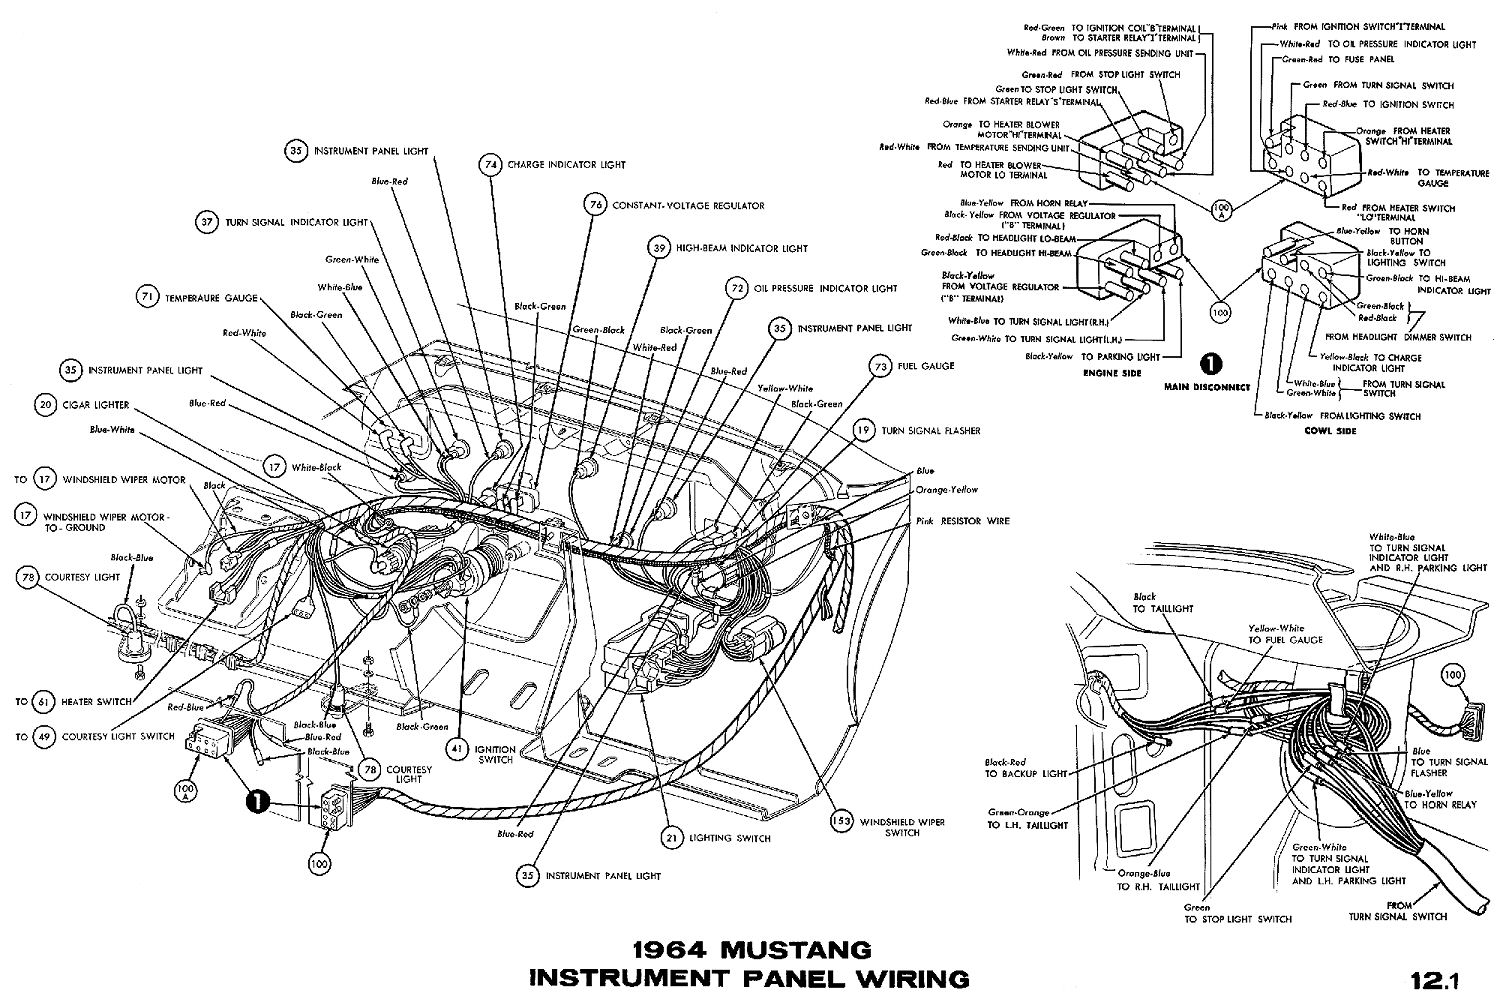 1964b 1969 mustang wiring diagram 1969 ranchero wiring diagram \u2022 wiring 1969 mustang alternator wiring diagram at eliteediting.co